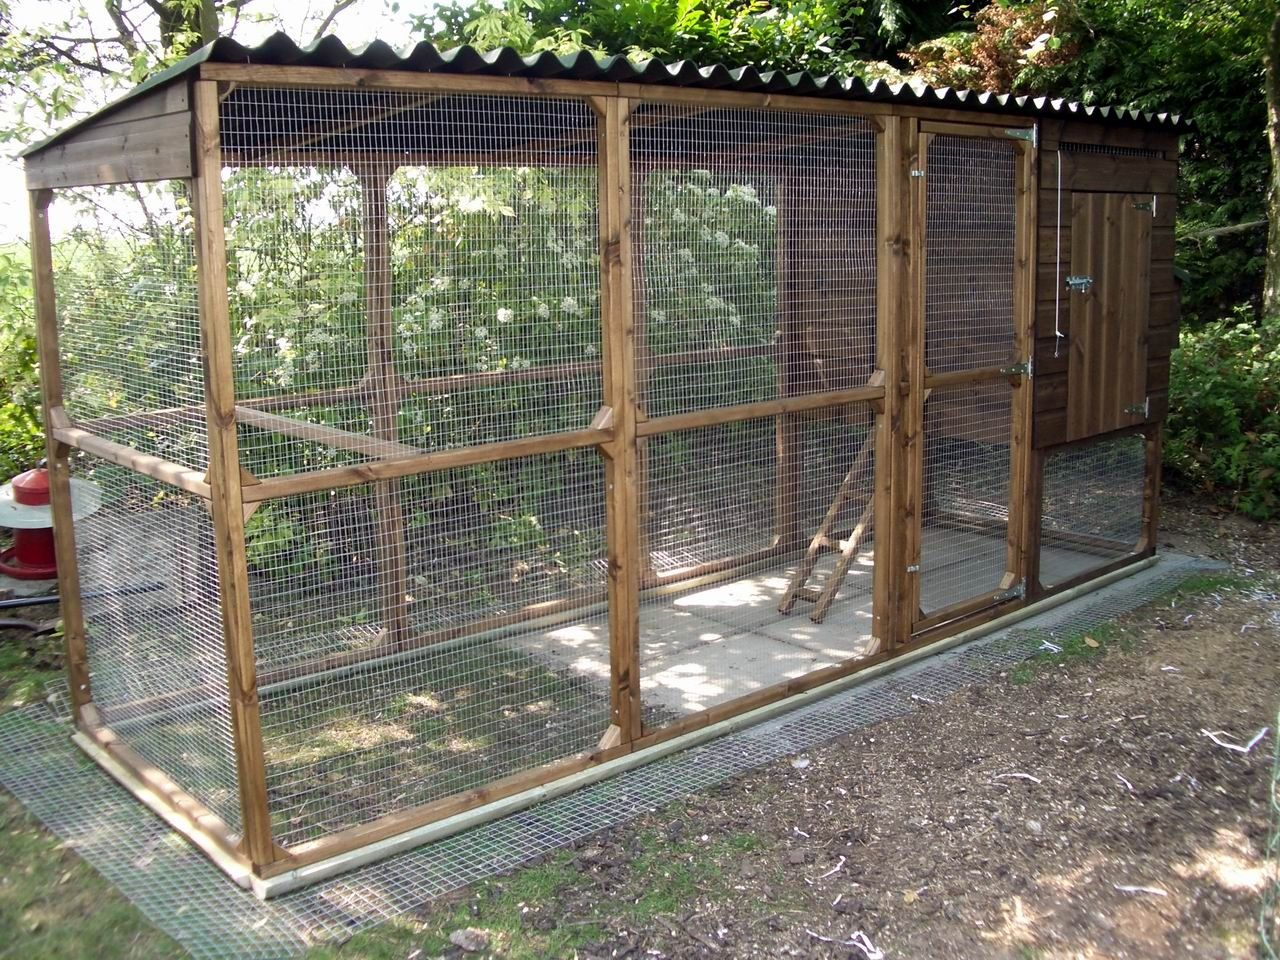 Chicken coop pictures chicken coop designs chicken runs for How to build a chicken hutch